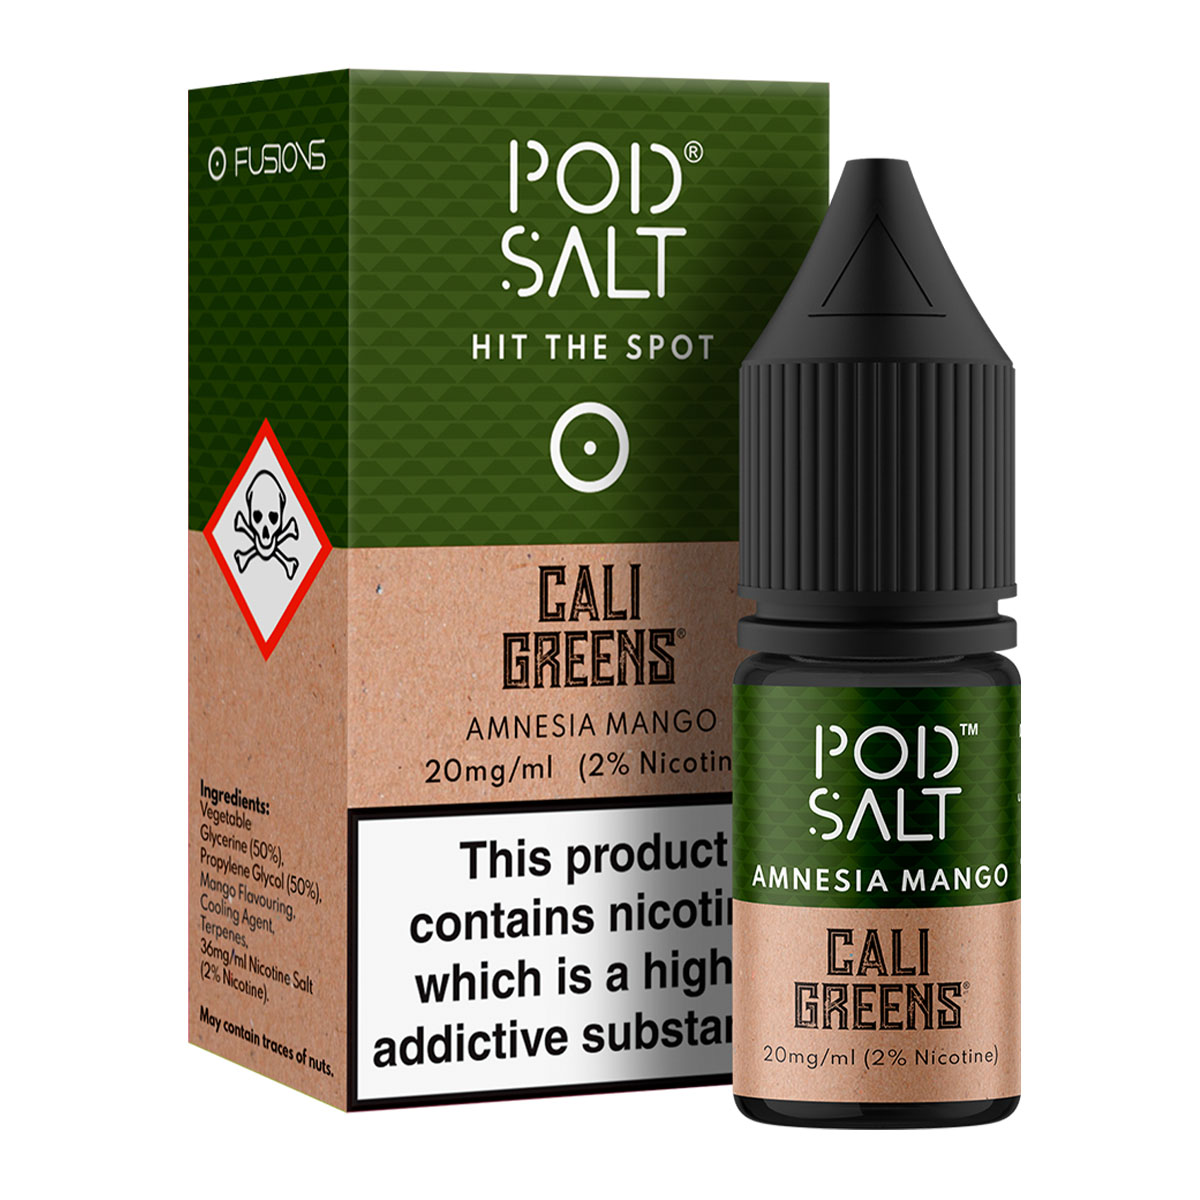 AMNESIA MANGO - CALI GREENS BY POD SALT